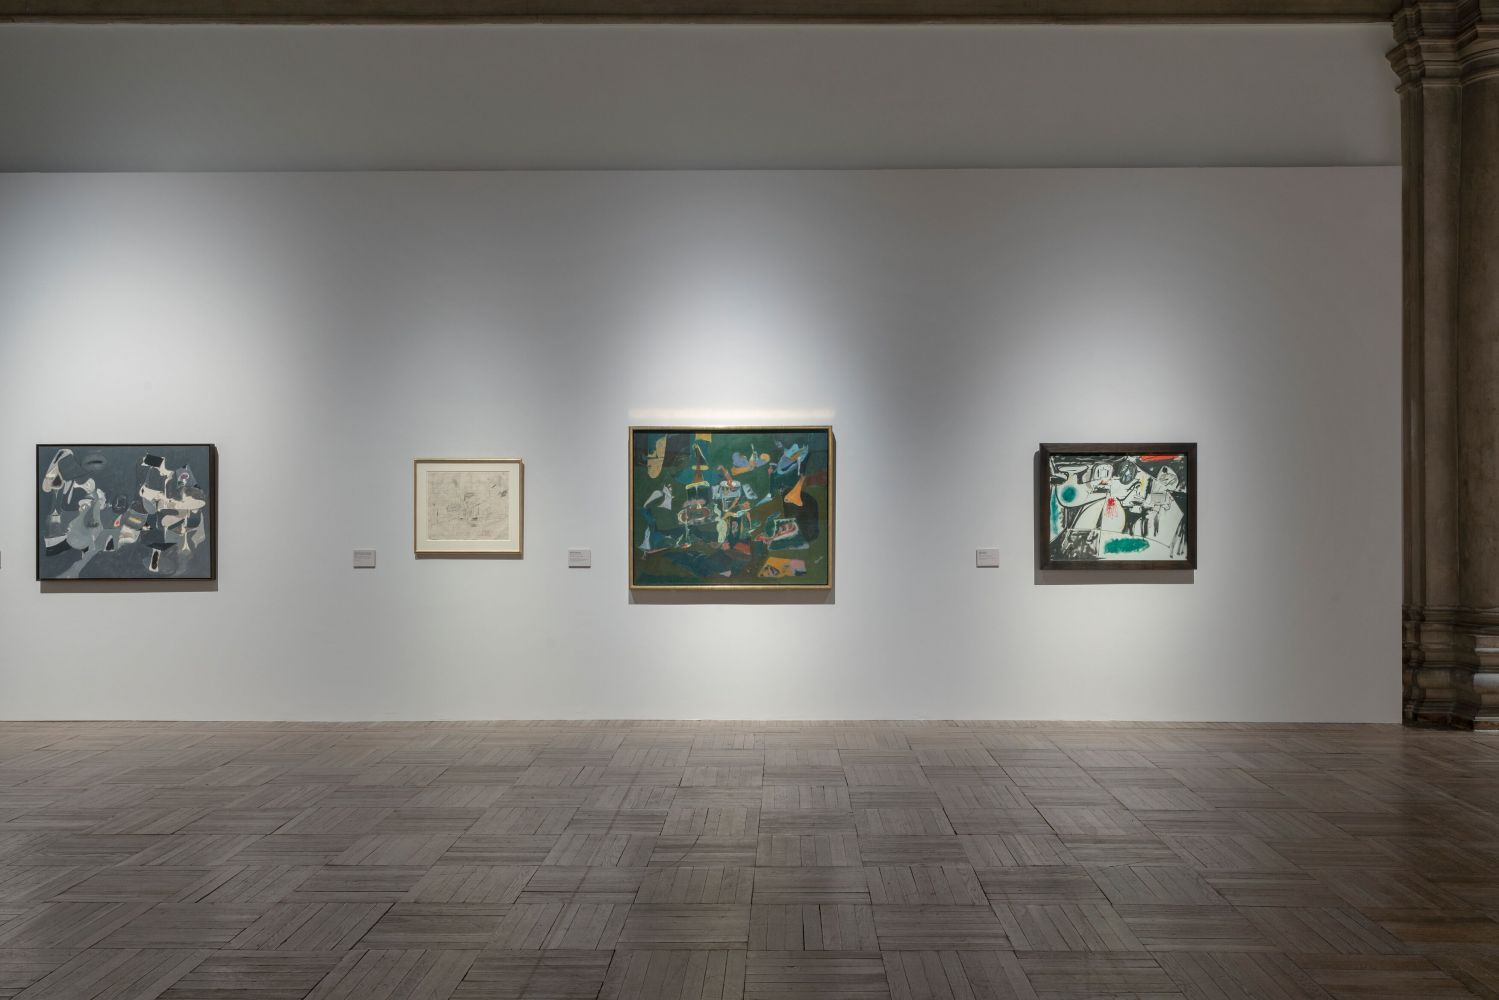 Installation photograph showing four works by Gorky: Soft Night, a preparatory drawing for Dark Green Painting, Dark Green Painting, and Last Painting